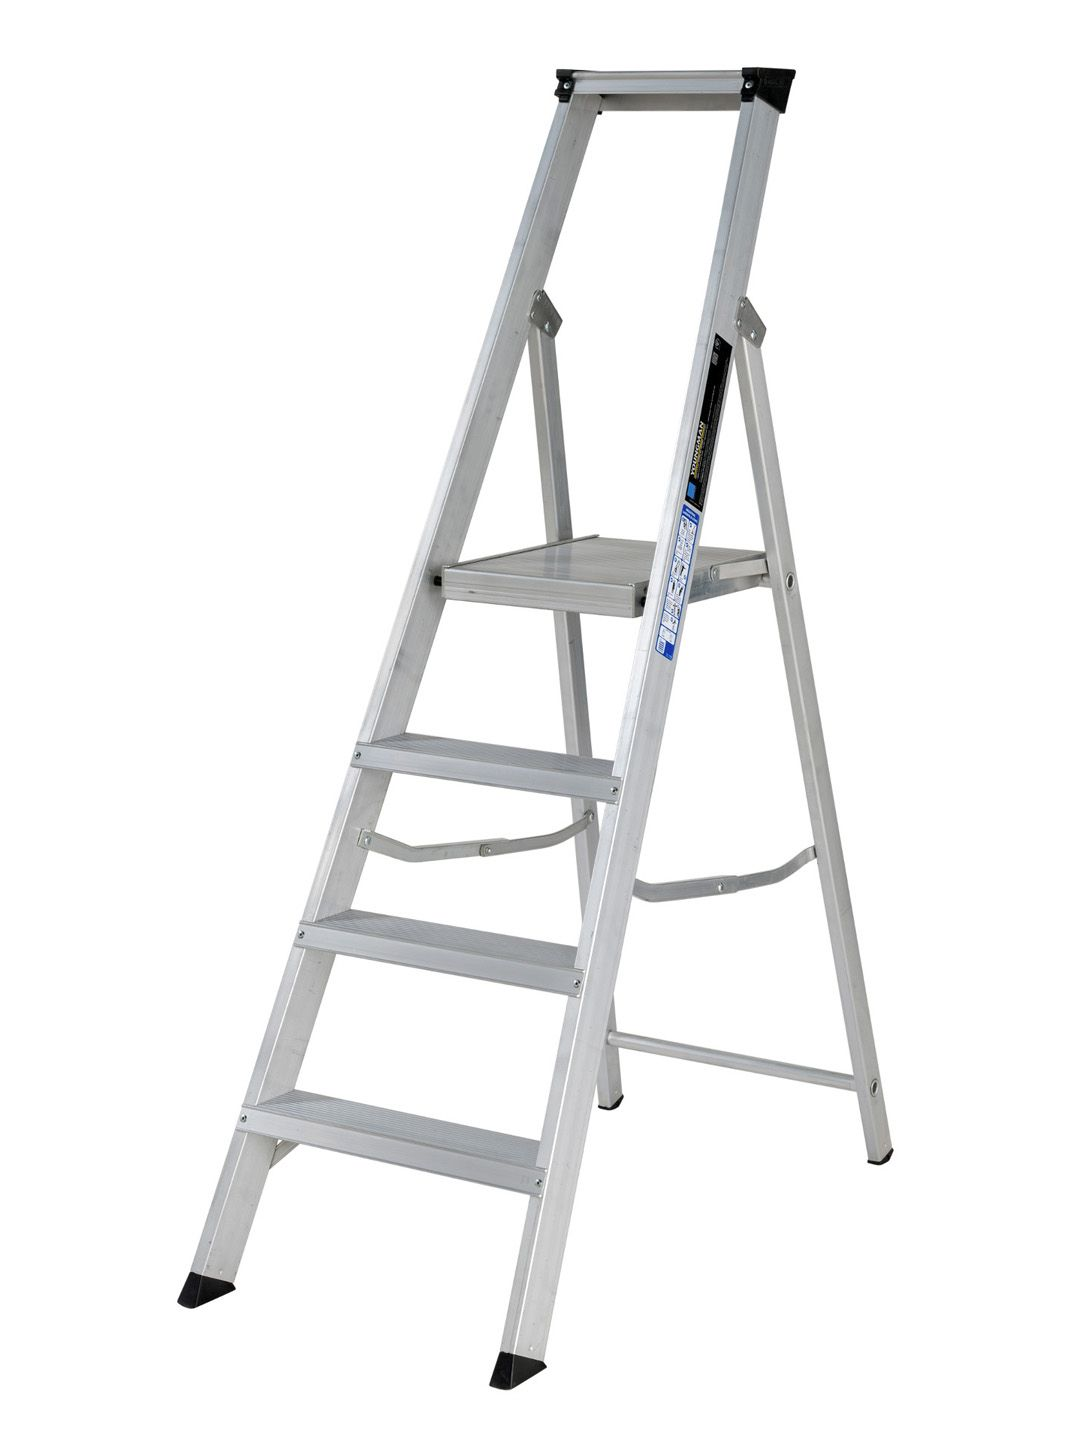 Youngman Heavy Duty Platform Step Ladders